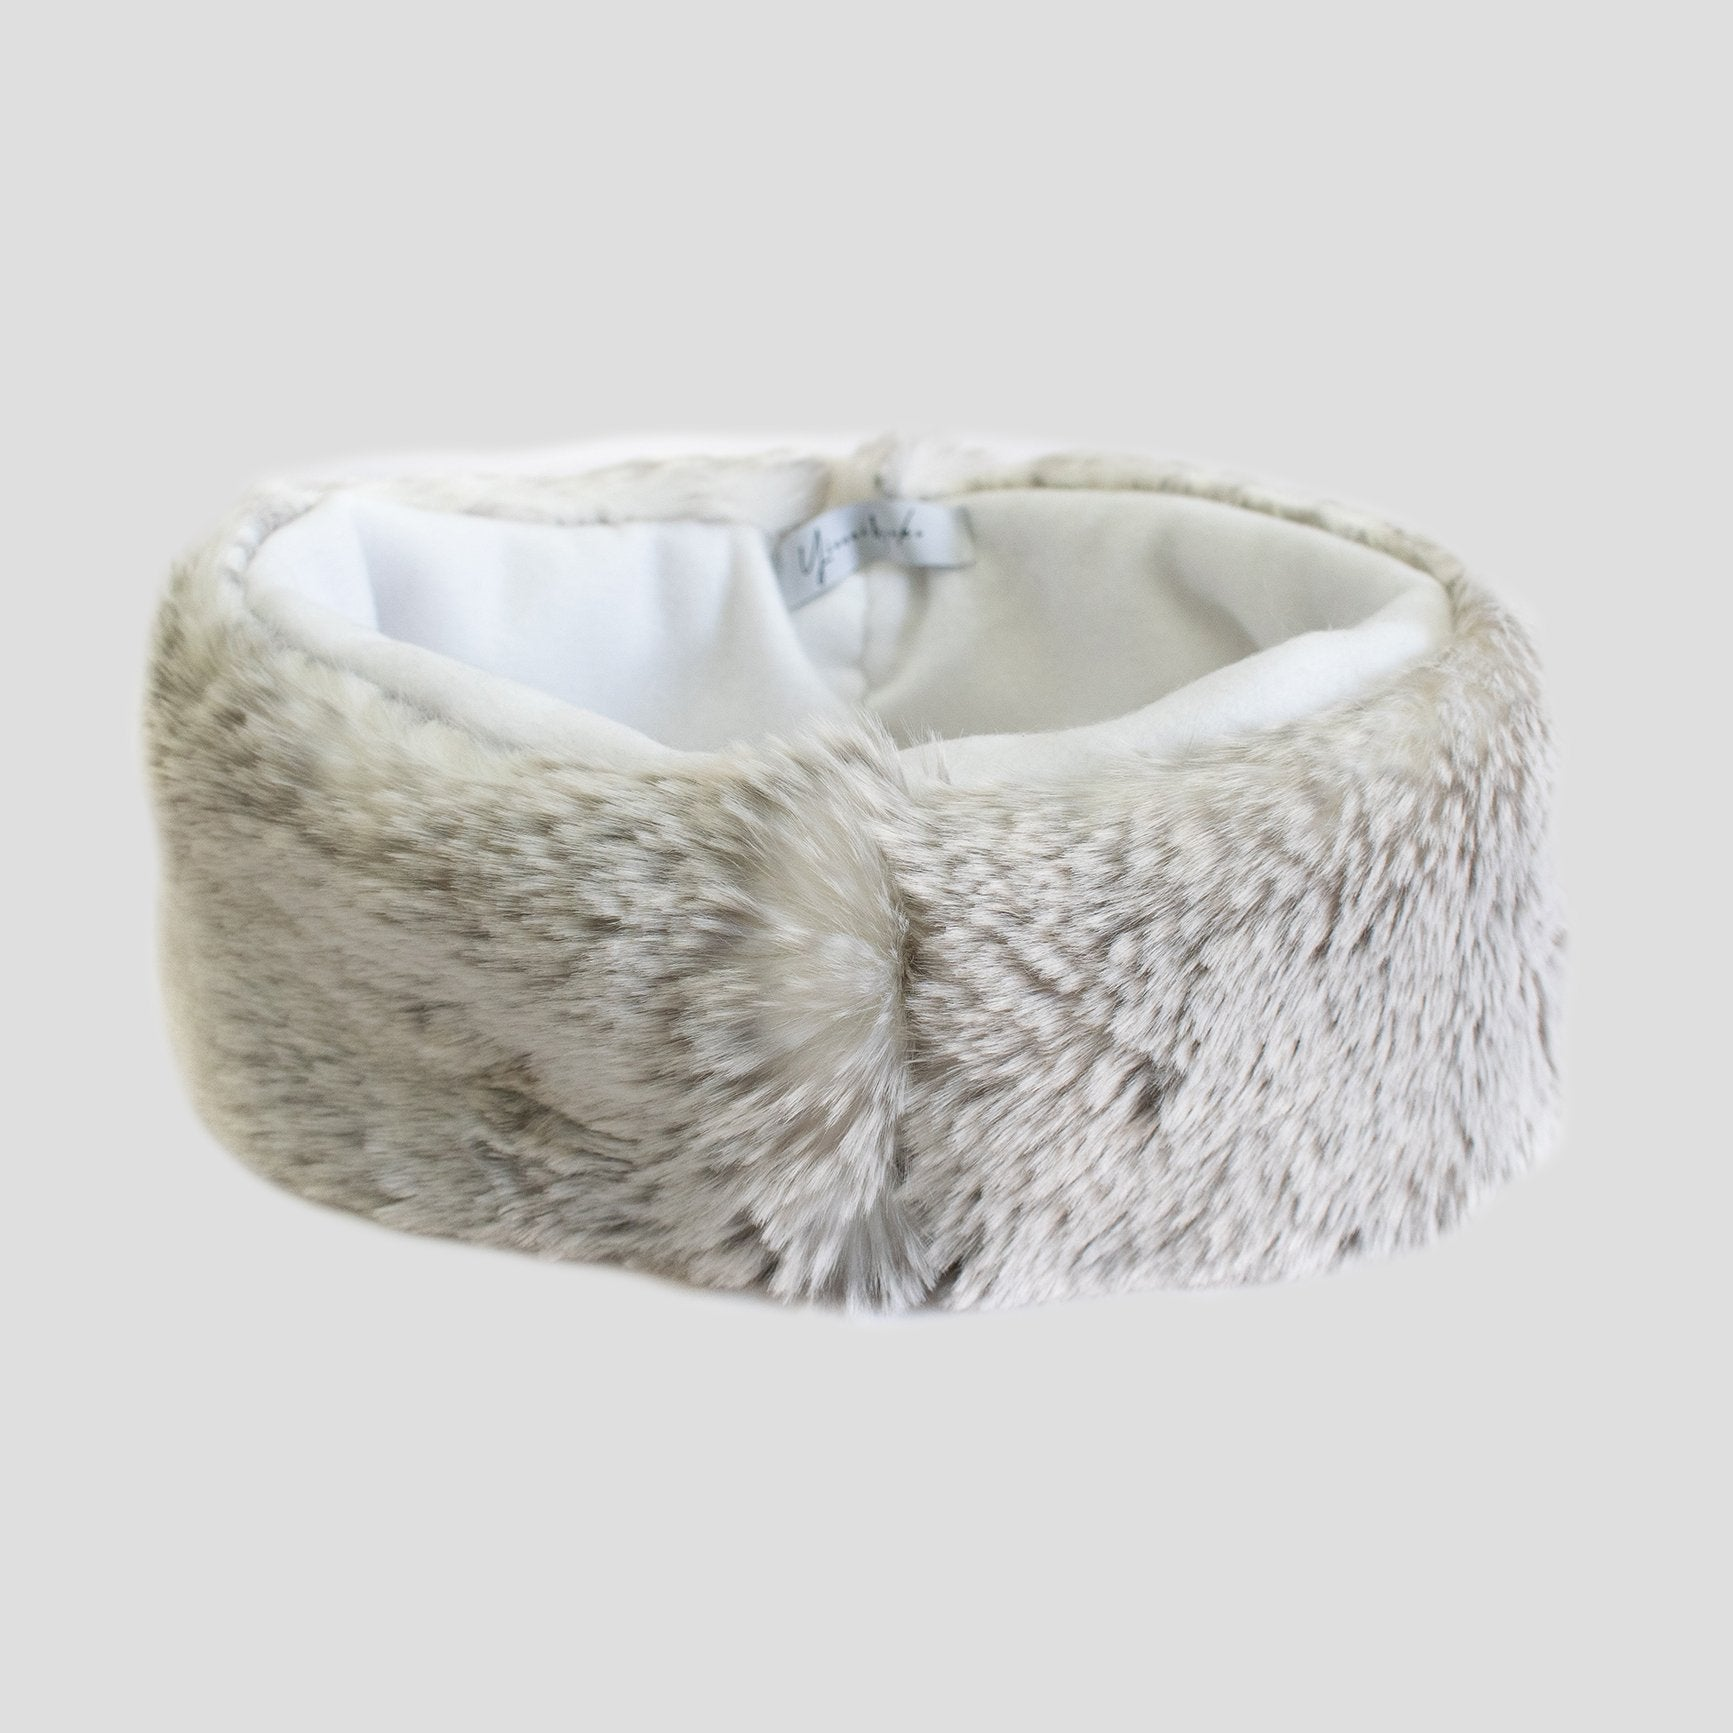 Yianni & Yoko Luxury Soft Faux Fur Dog Snood - Large